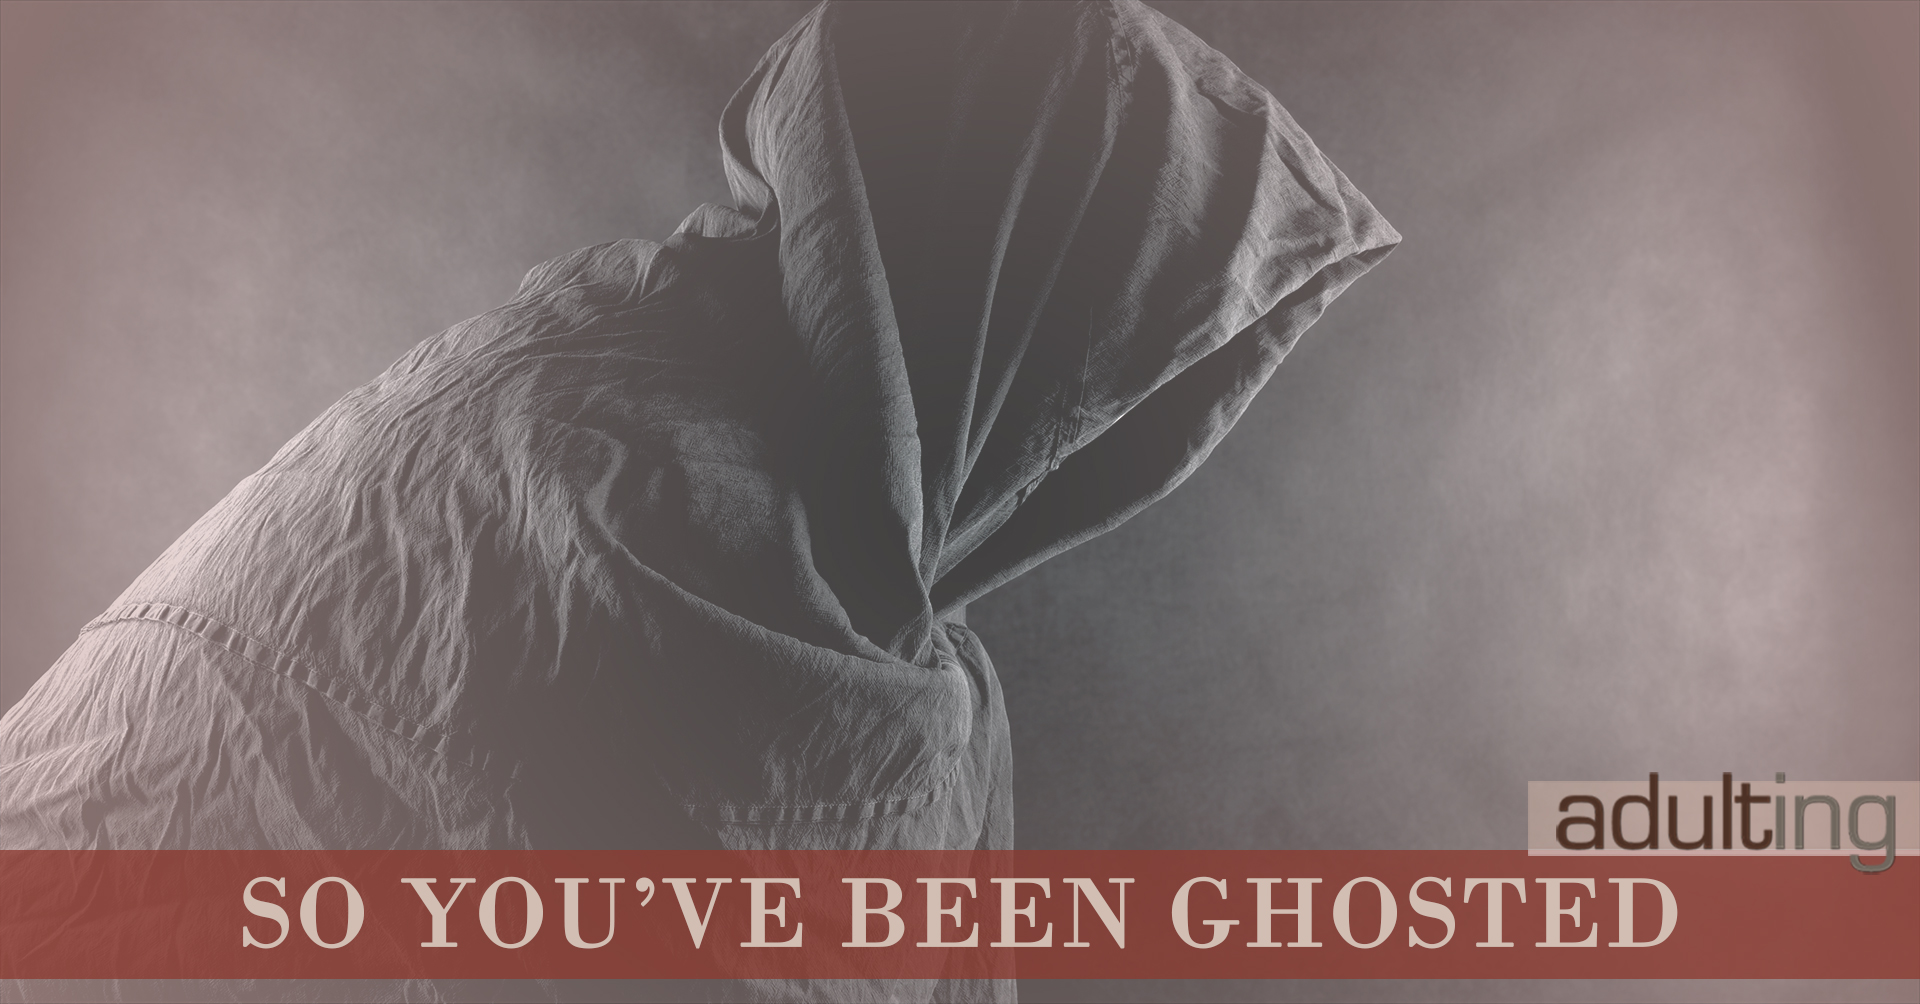 So You've Been Ghosted